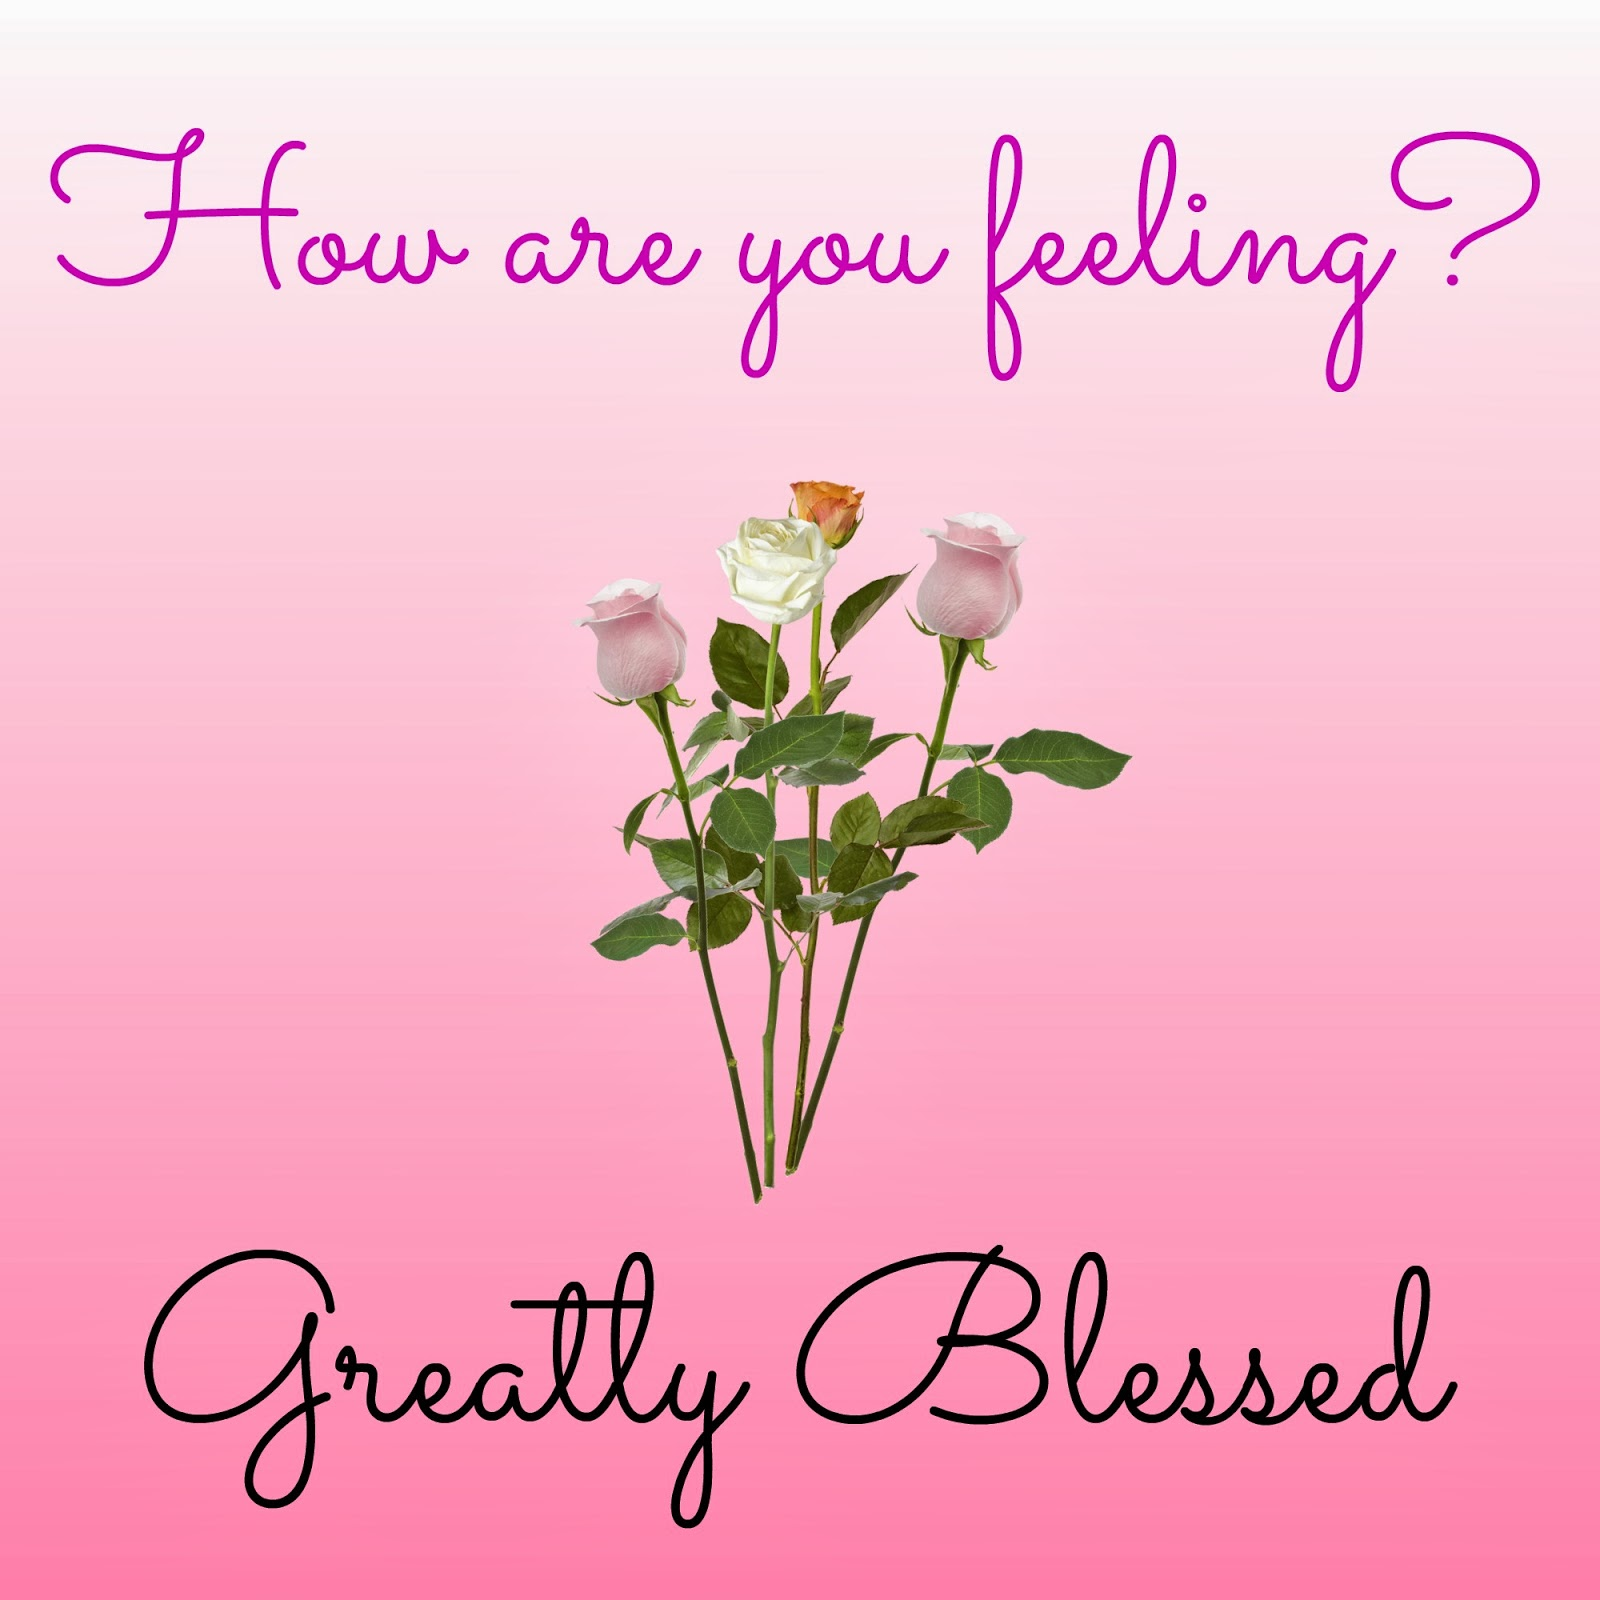 Greatly Blessed: How Are You Feeling?  Greatly Blessed...